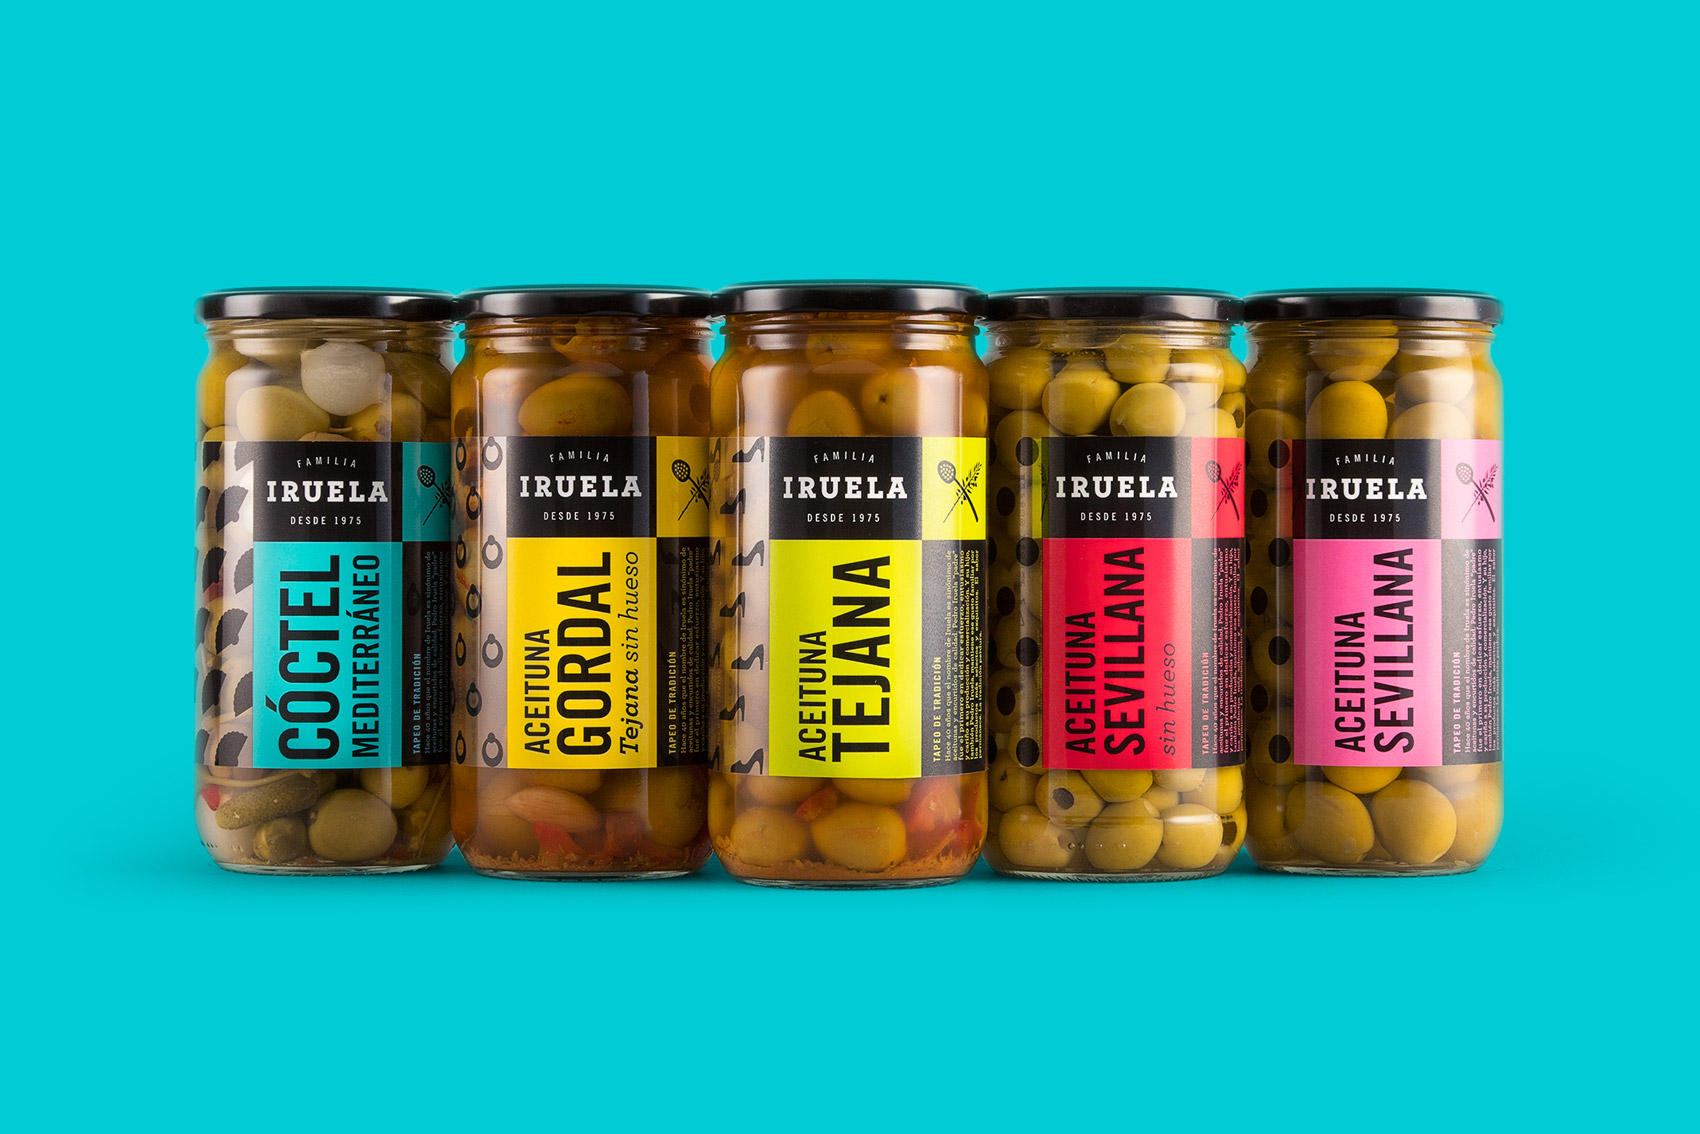 Vebranding designs the packaging for spanish olives Iruela